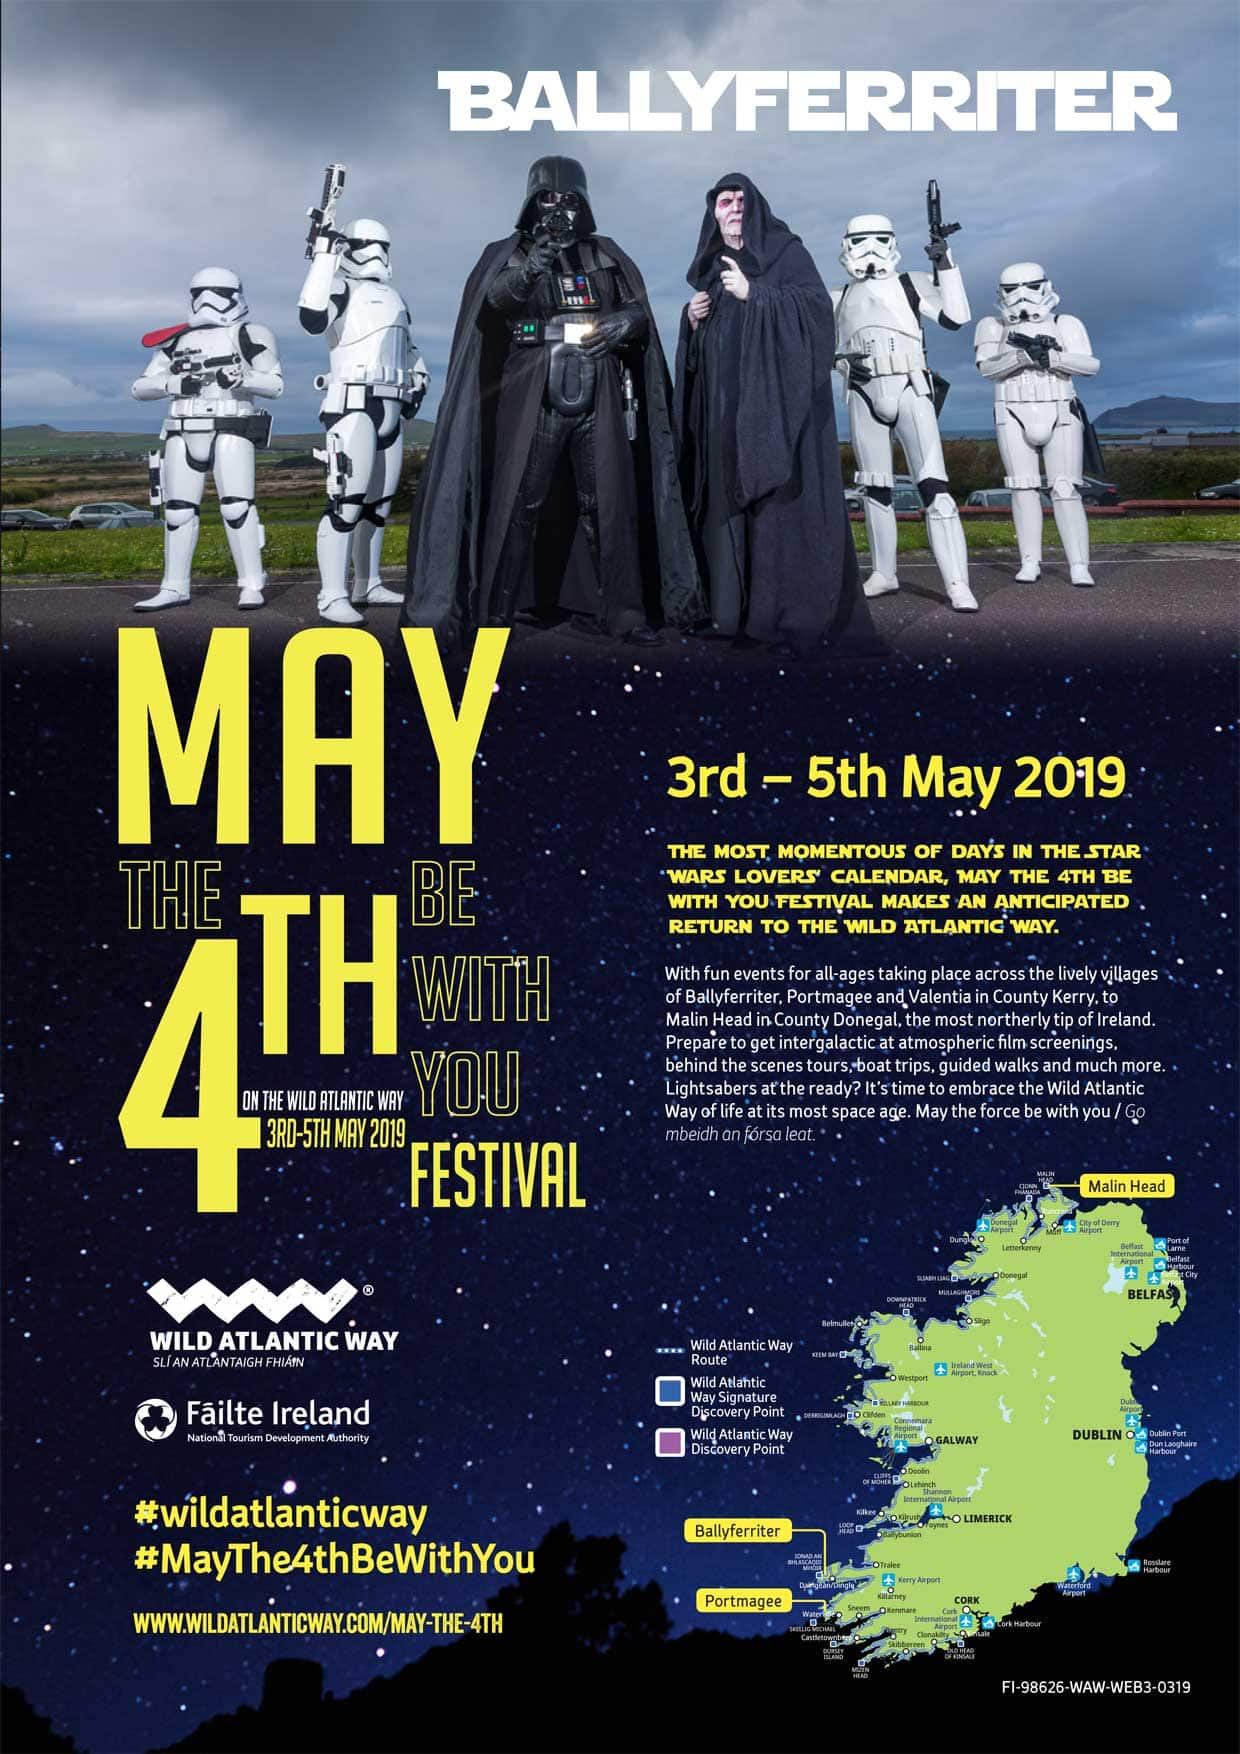 May the 4th be with you - Celebrating all things Star Wars in Ireland